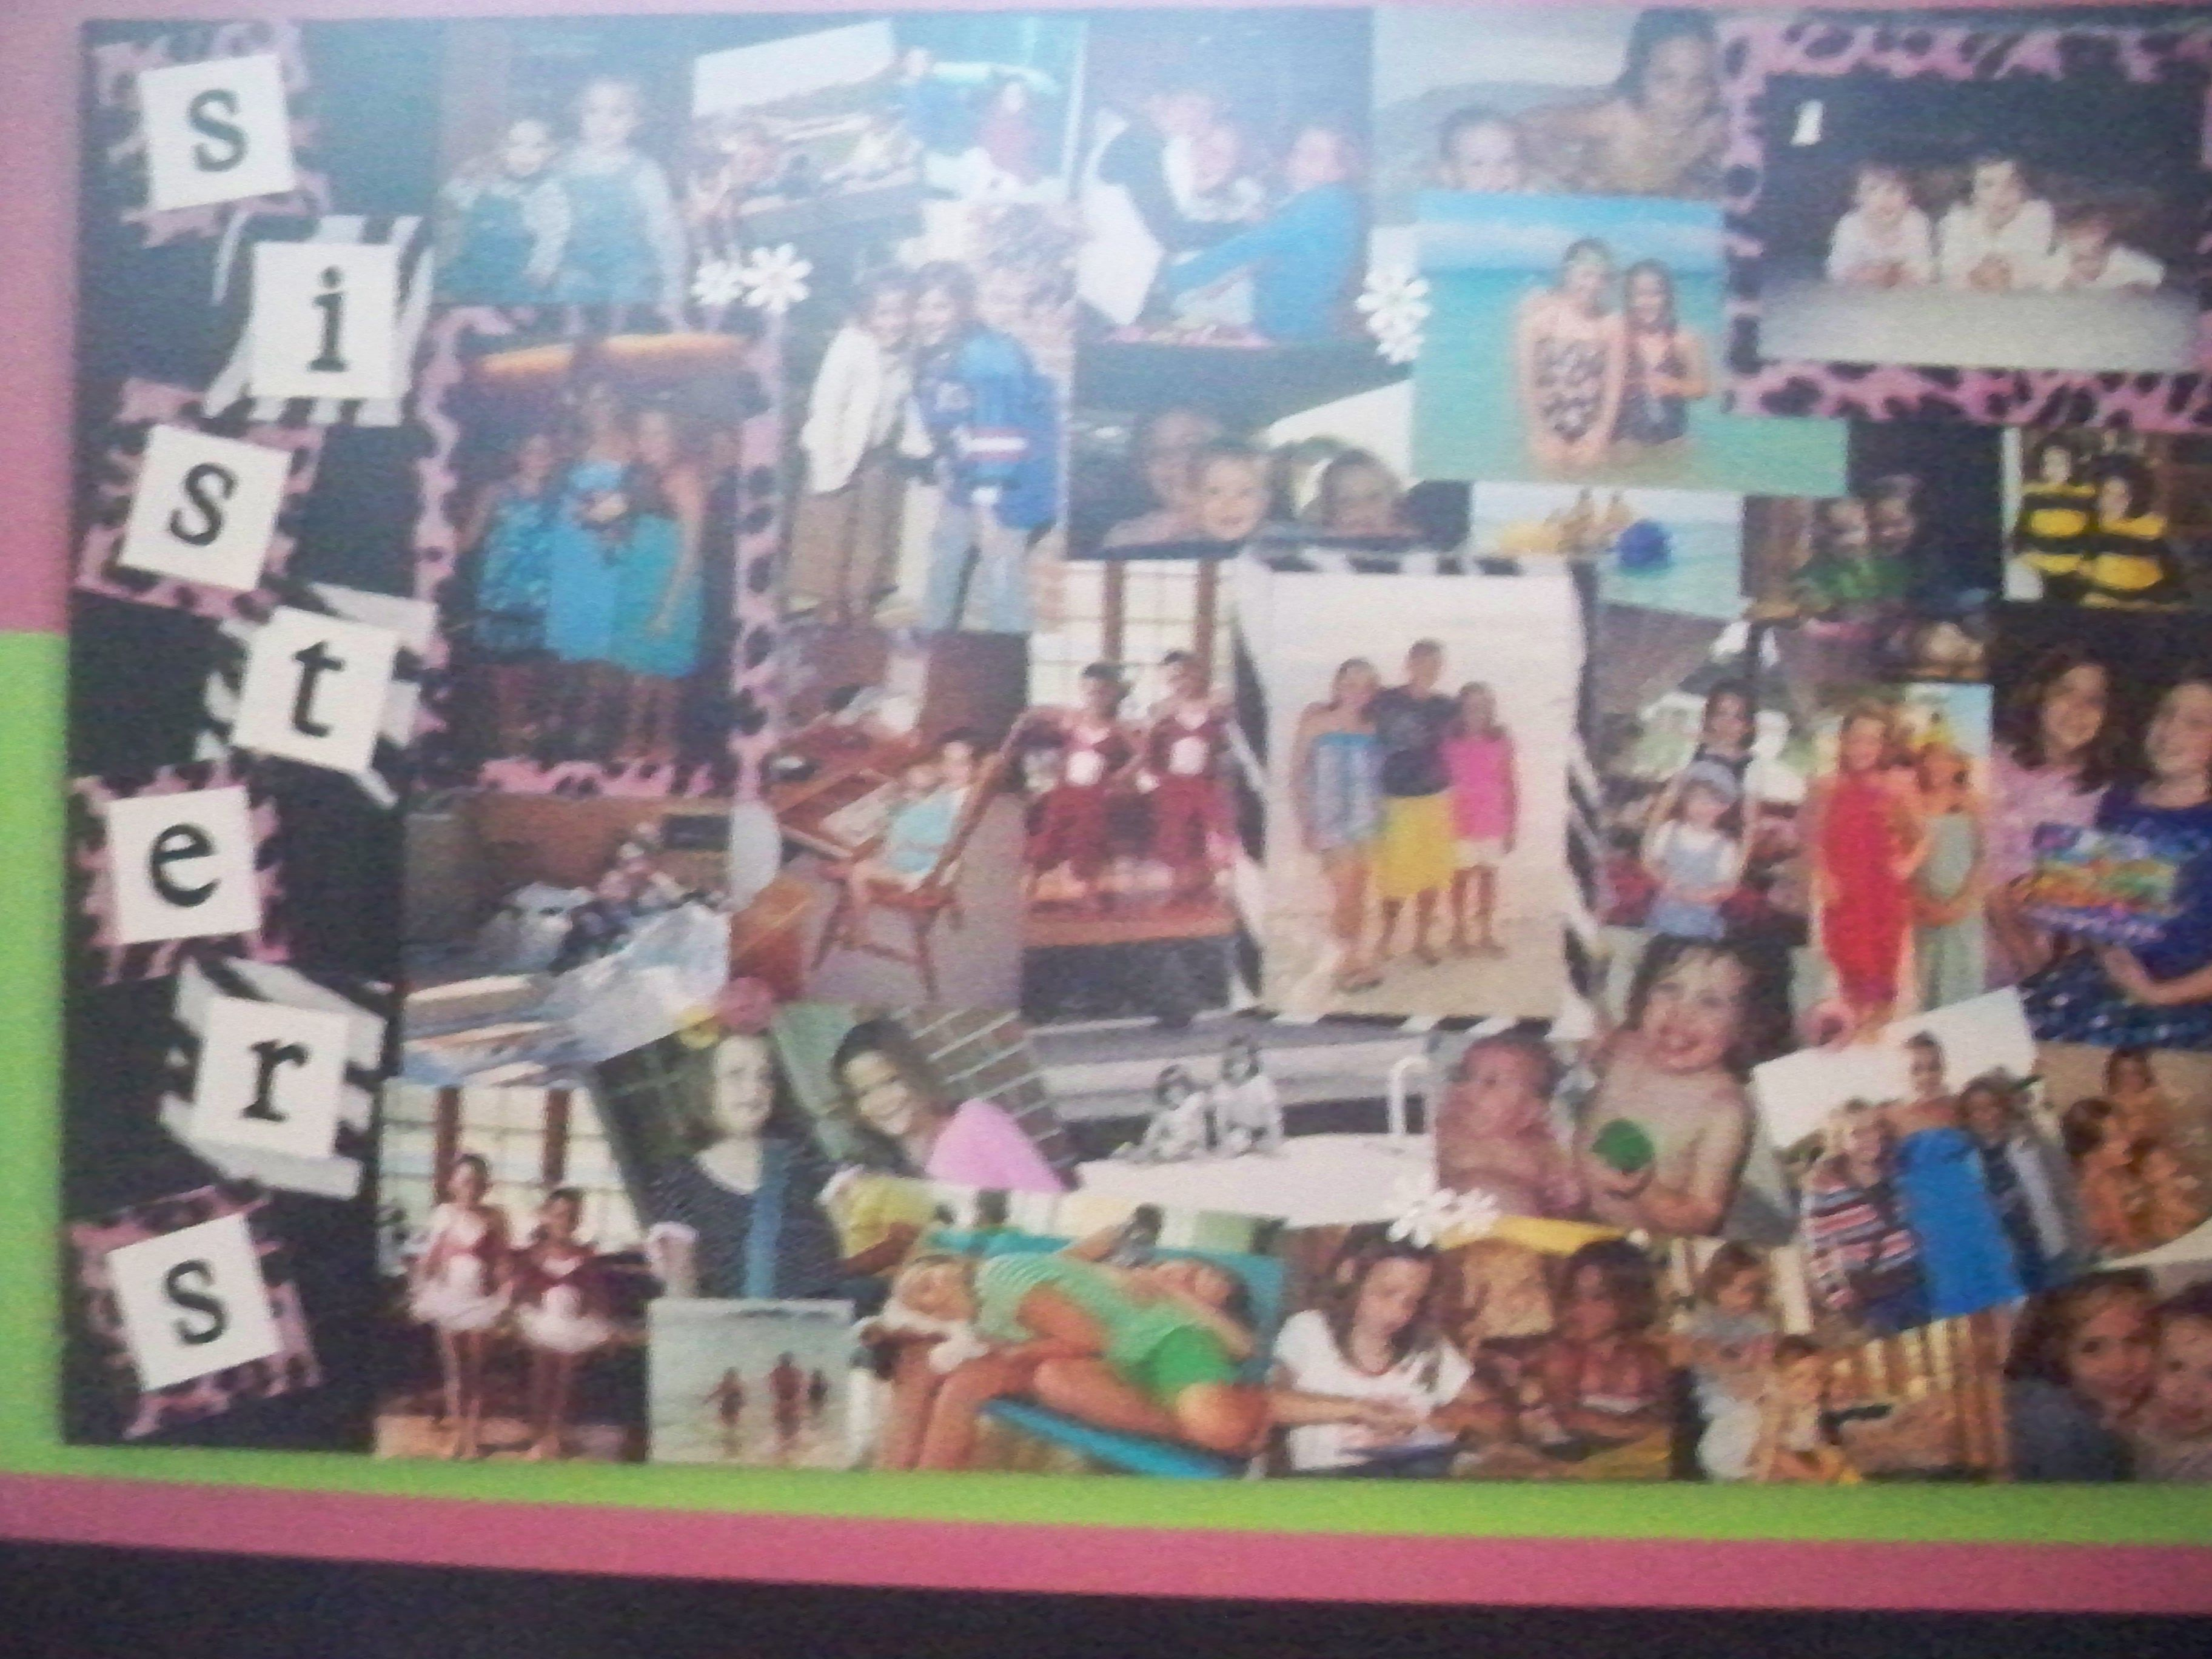 this is just a collage of pictures modge podged together on a poster